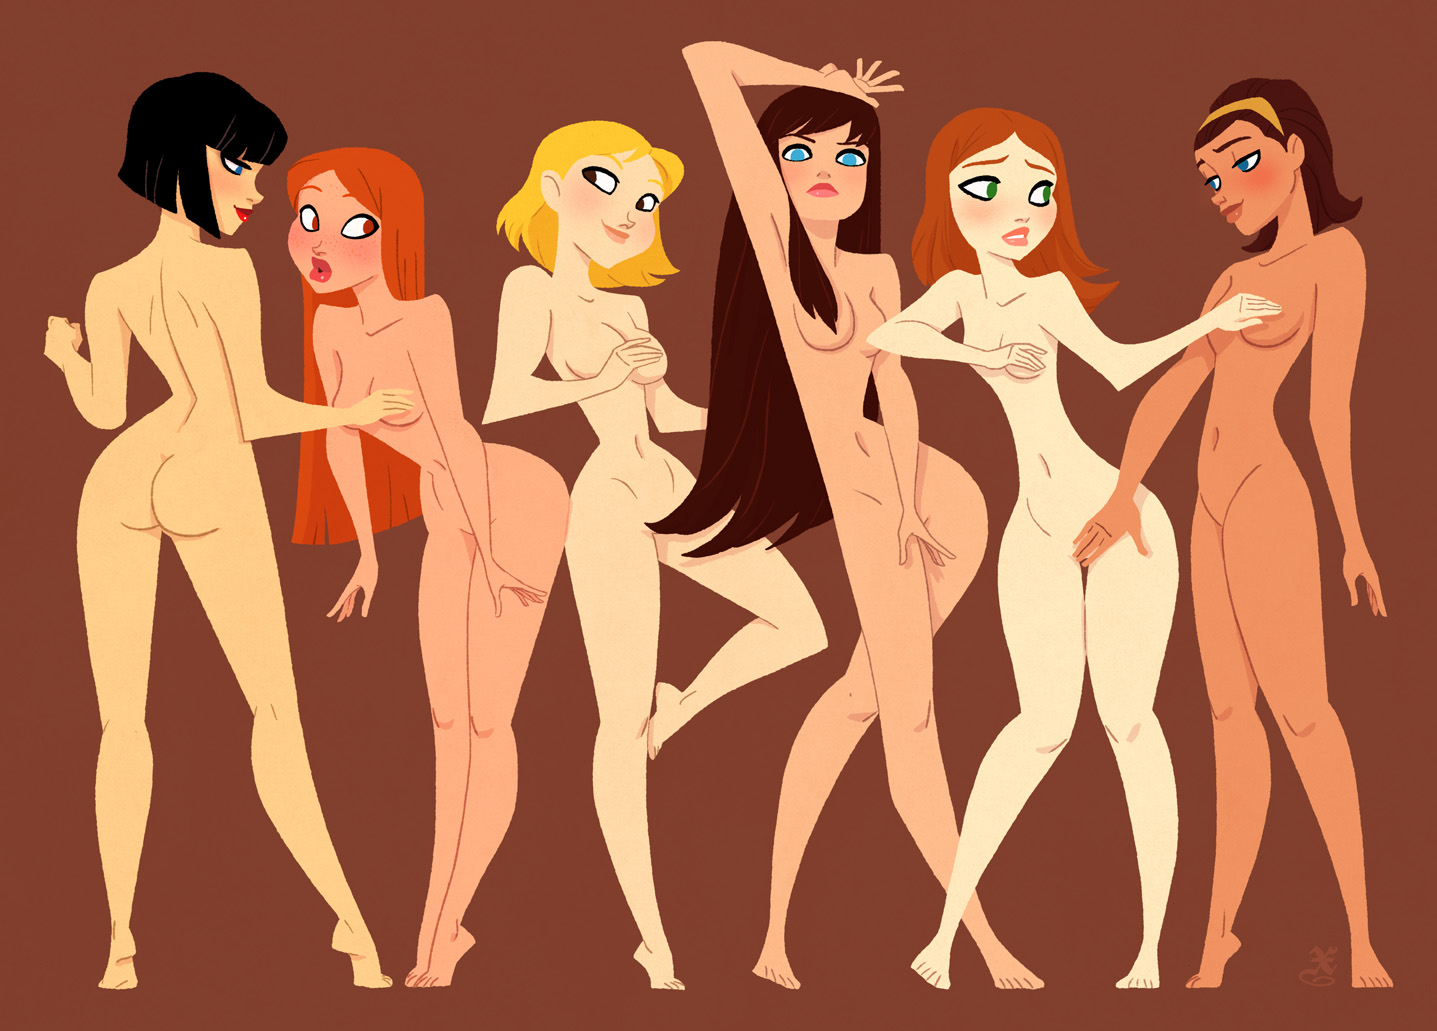 Sexy cartoon erotic photo